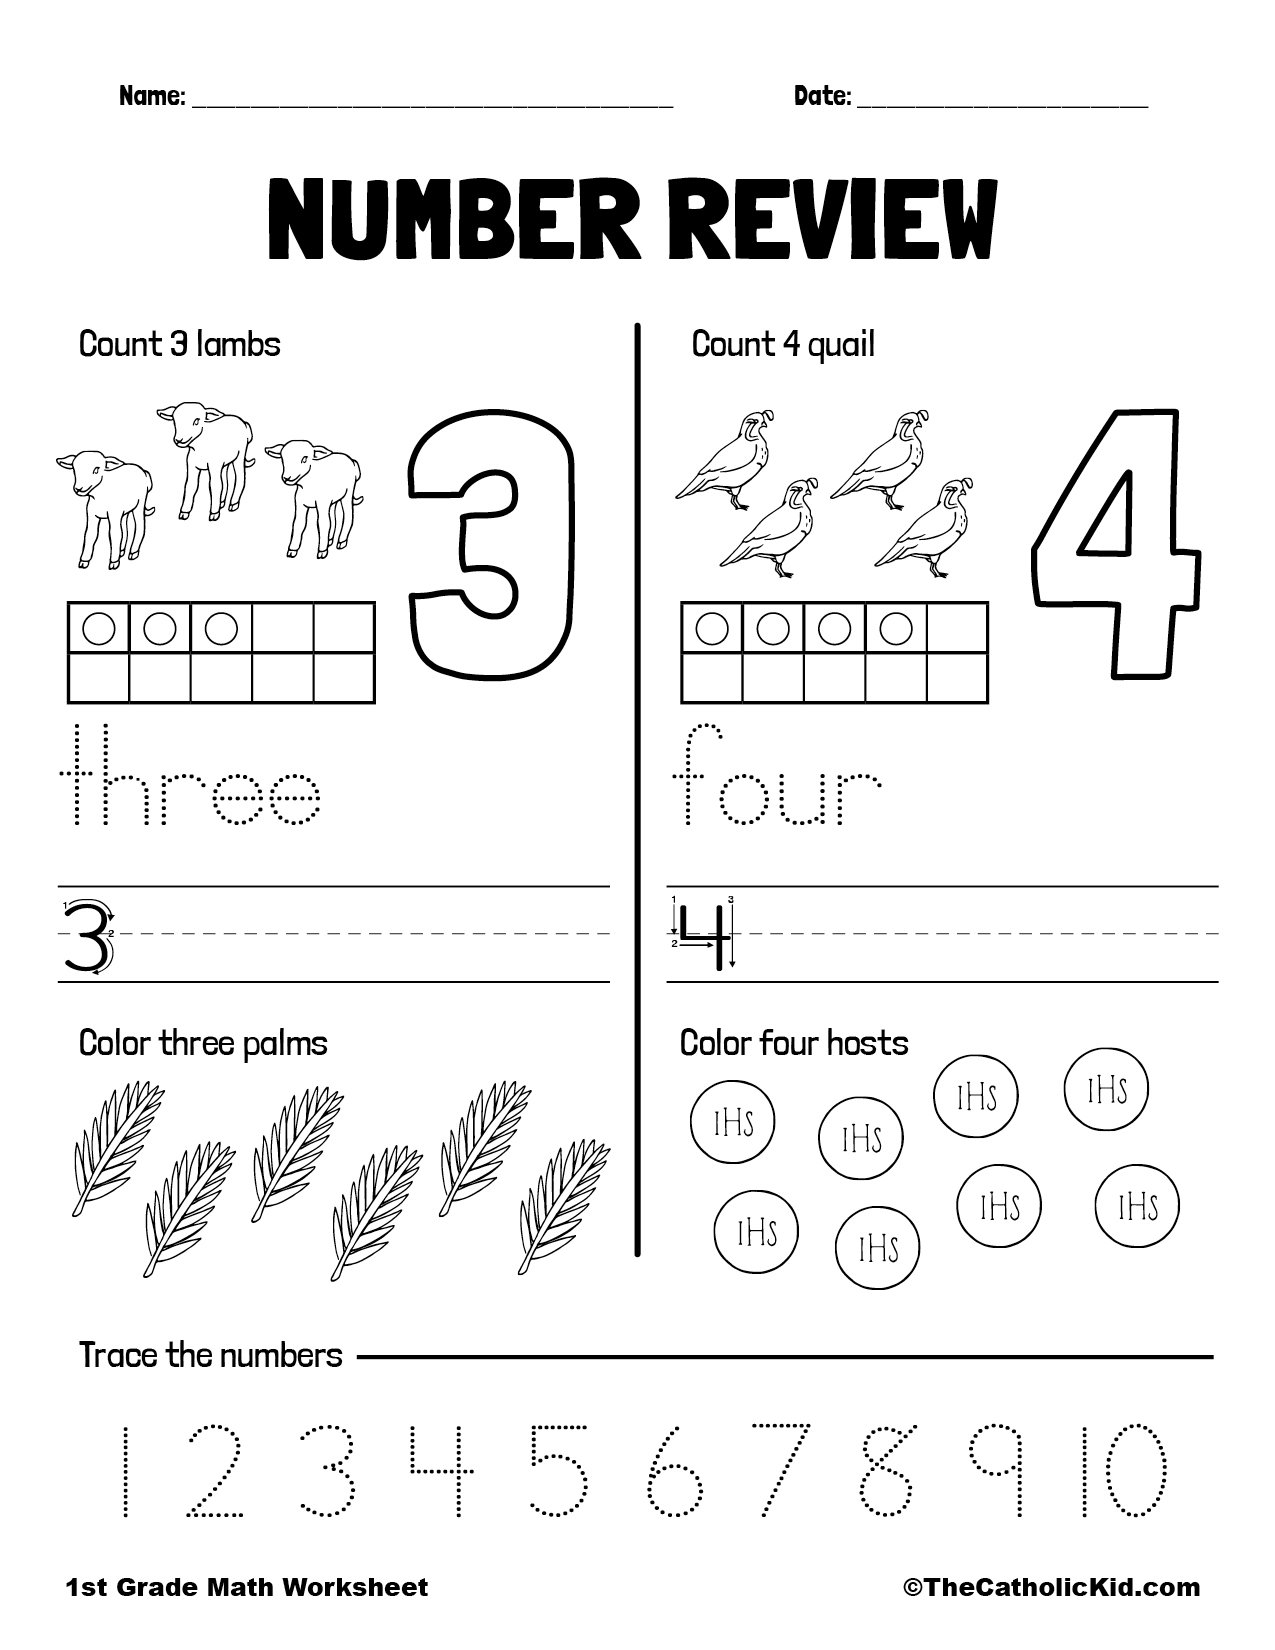 Counting Review Numbers 3 and 4 - 1st Grade Math Worksheet Catholic